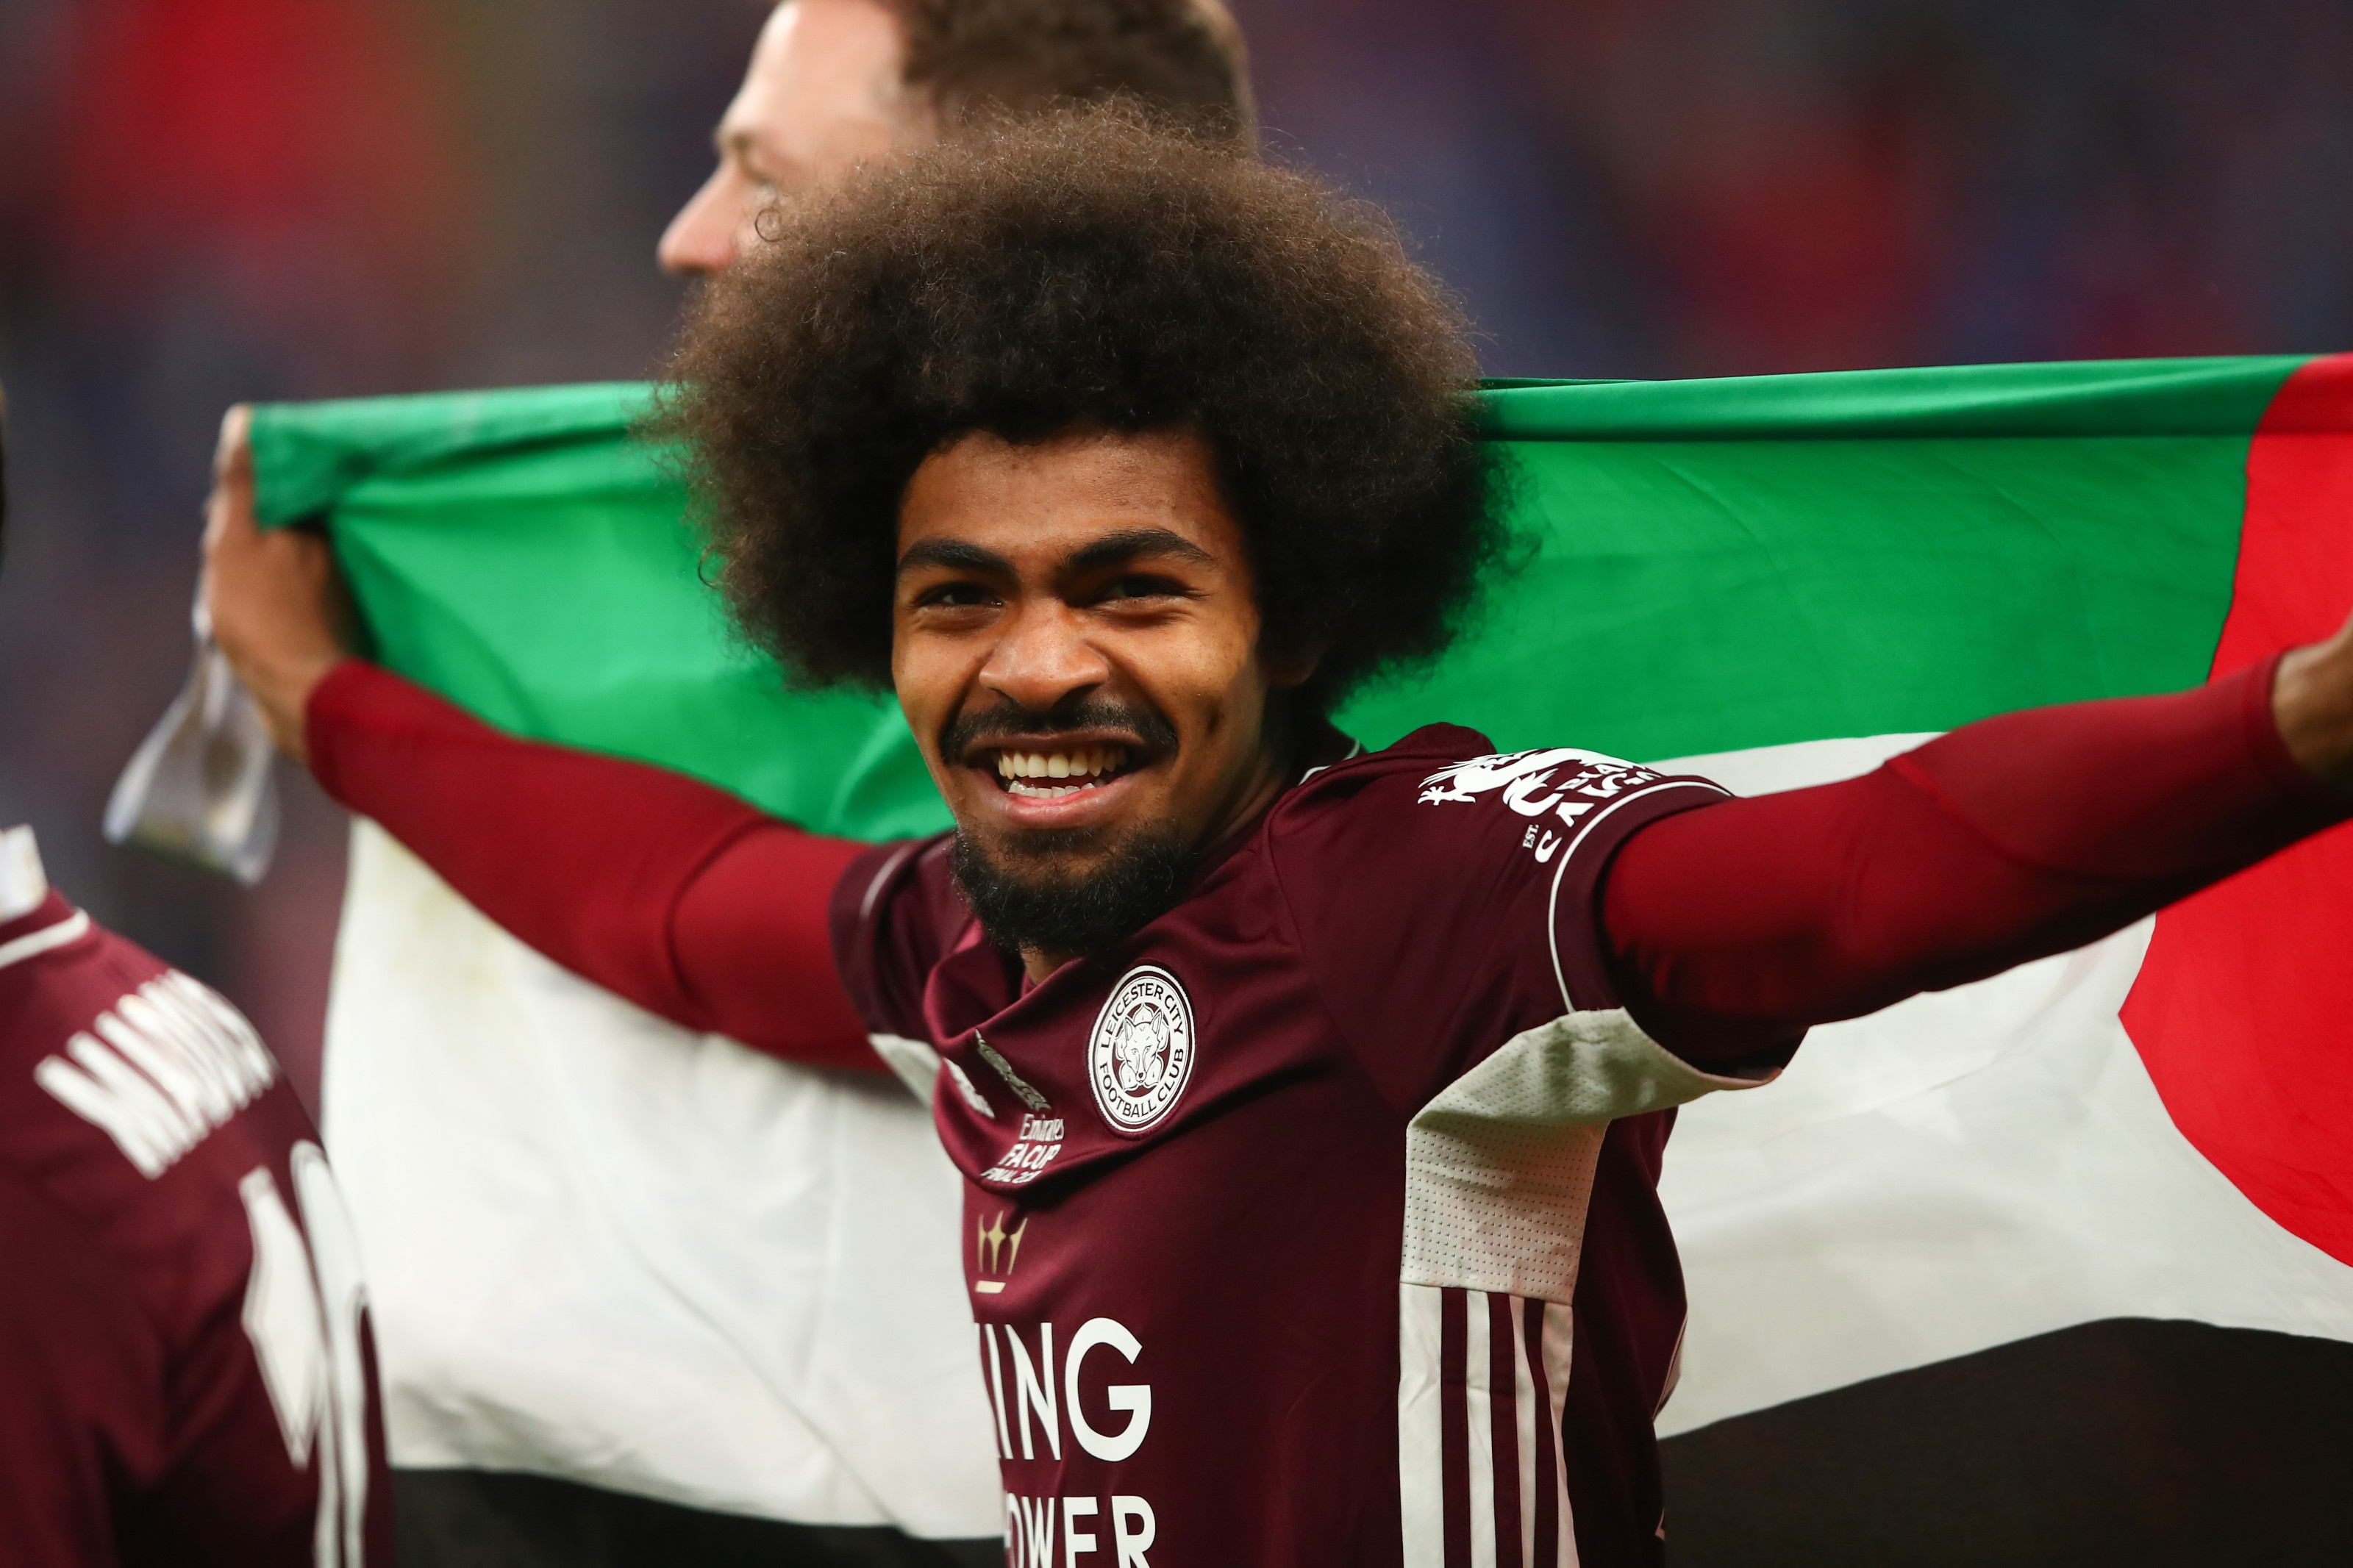 Leicester City players Hamza Choudhury and Wesley Fofana with Palestinian flag